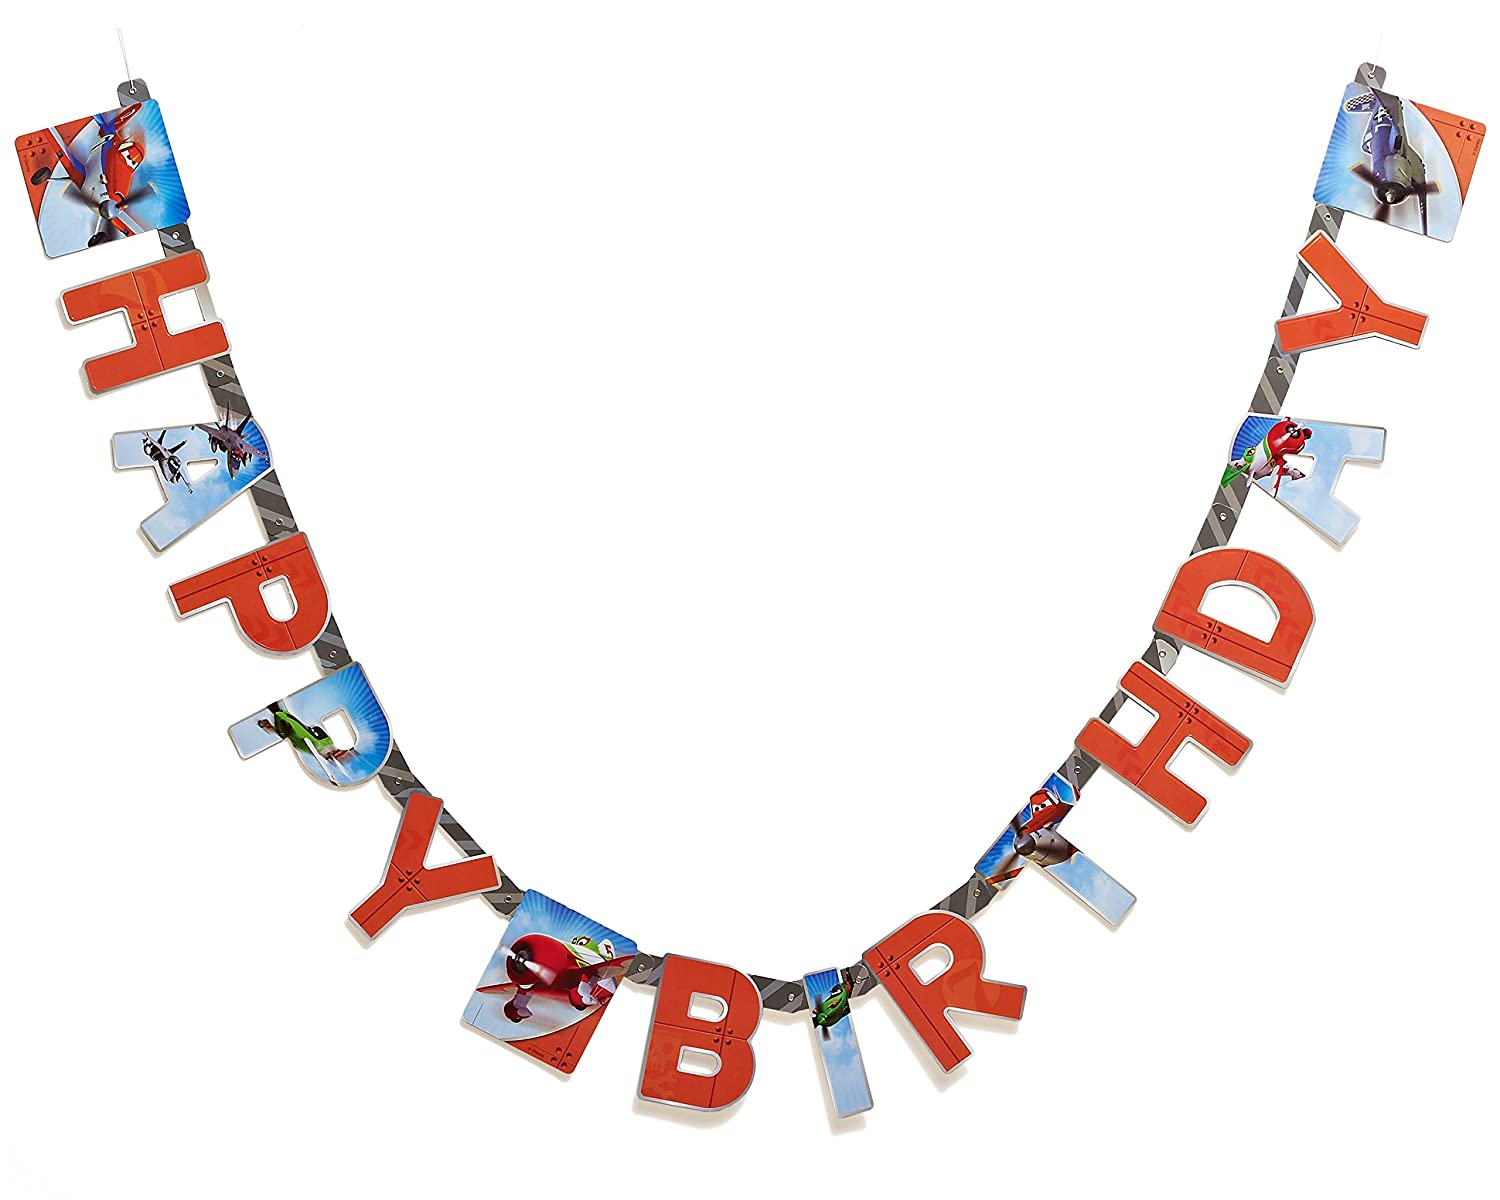 Planes birthday party banner party supplies decorations amazon planes birthday party banner party supplies decorations amazon canada stopboris Gallery